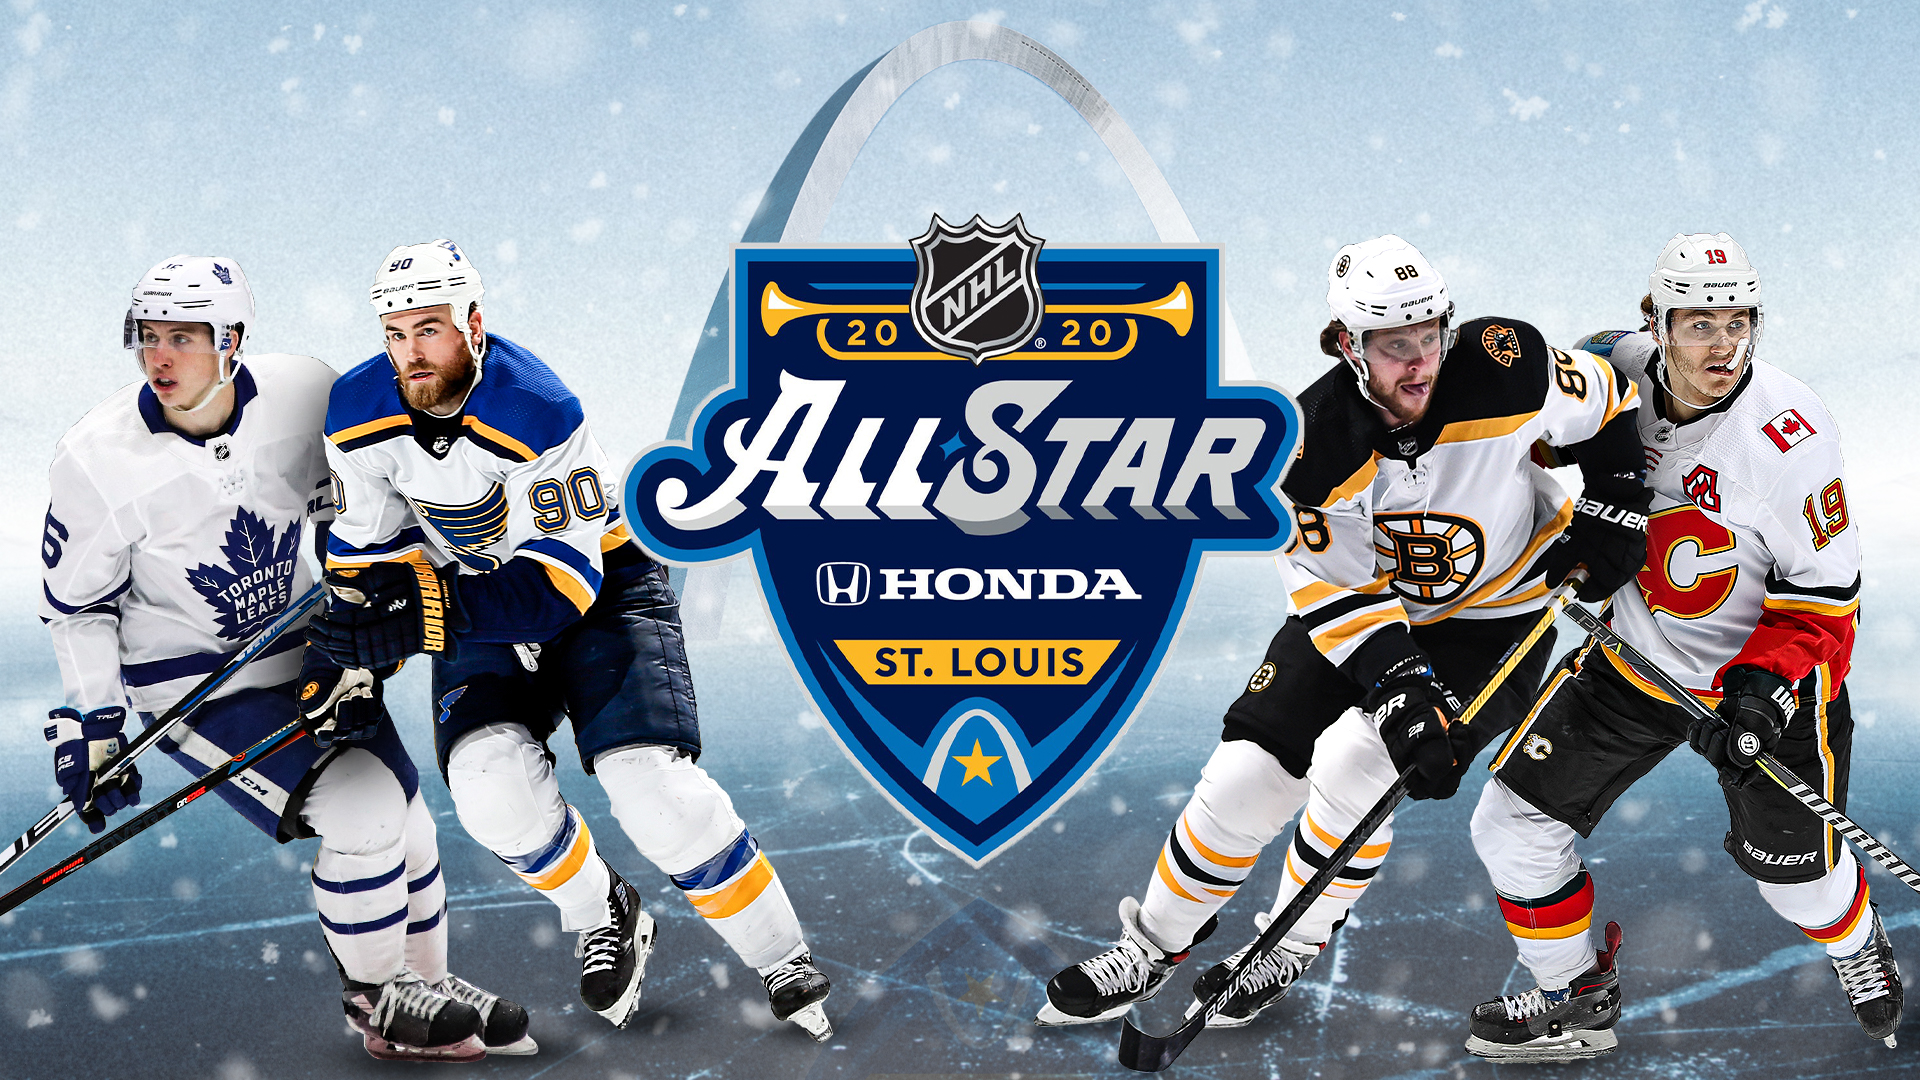 NHL All Star Game 2020 Date start time rosters TV channel 1920x1080